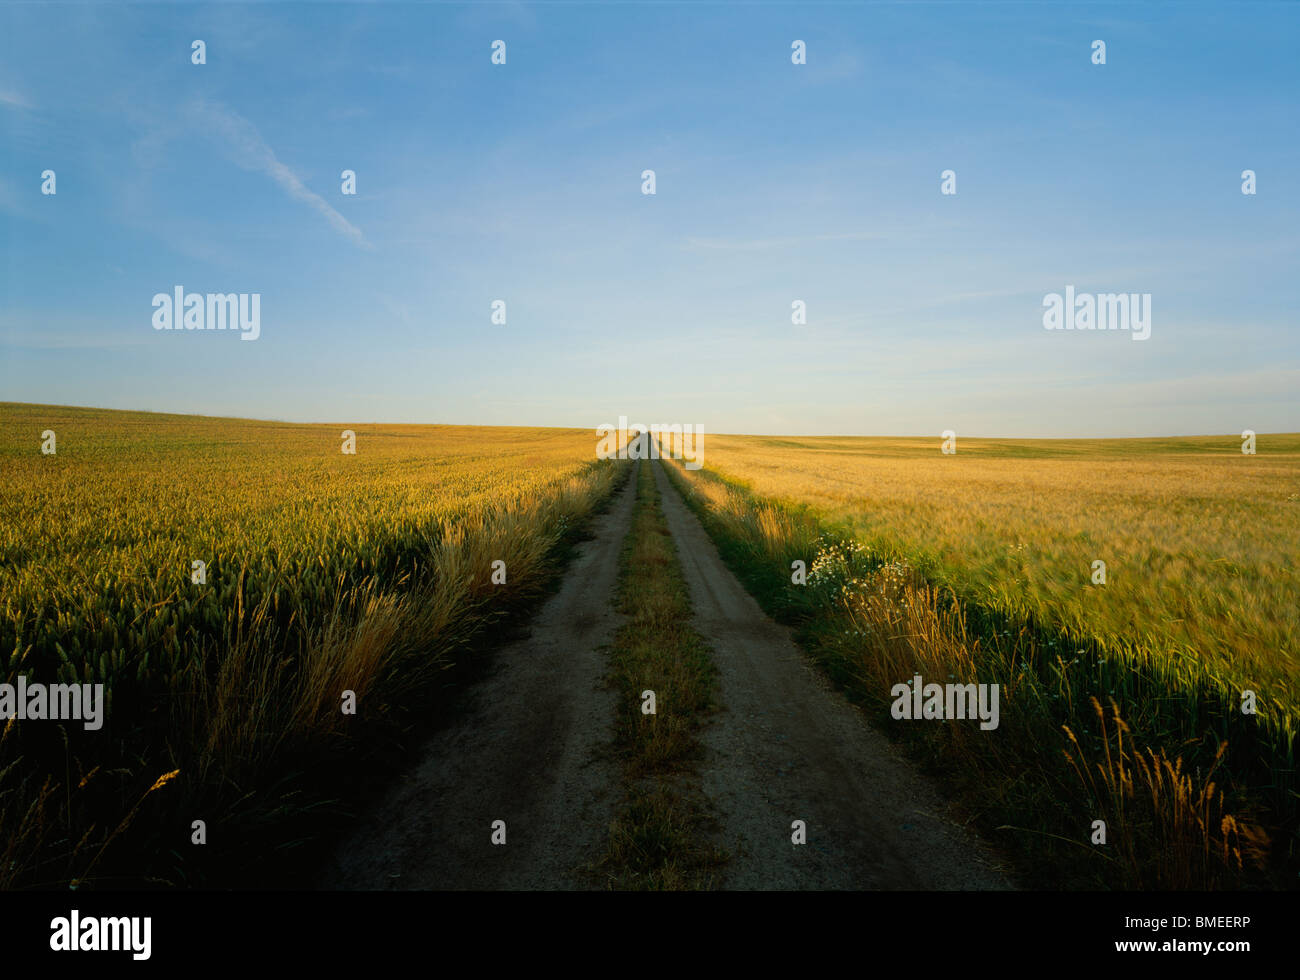 Dirt track passing through wheat field - Stock Image